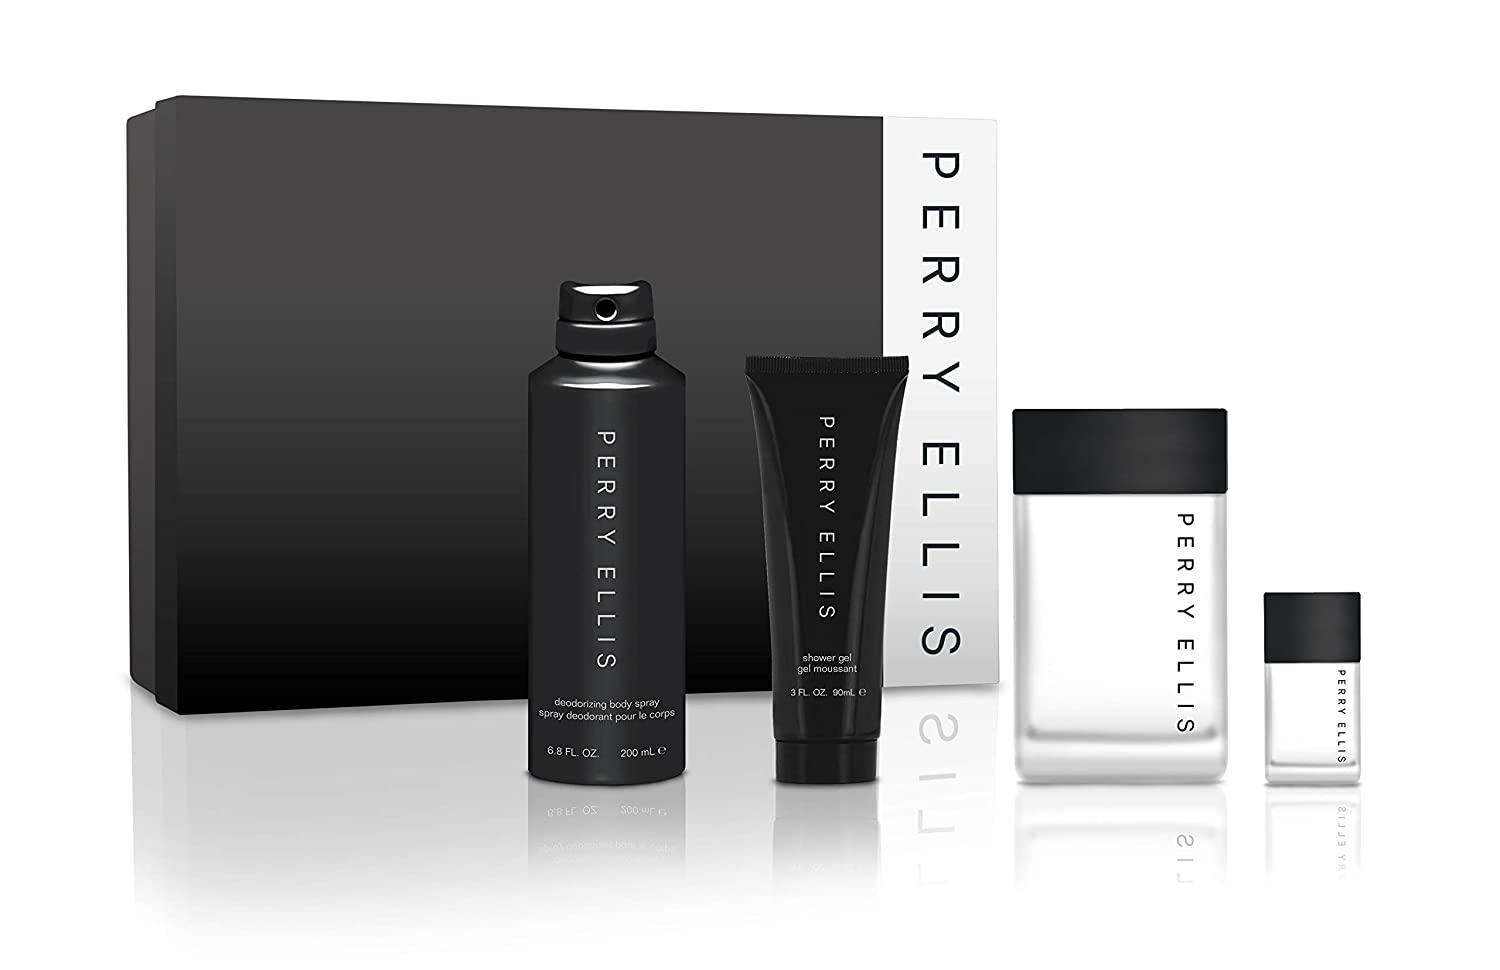 Perry Ellis Fragrances ellis for Ranking integrated 1st place men 3 gift Tampa Mall 4-piece - set